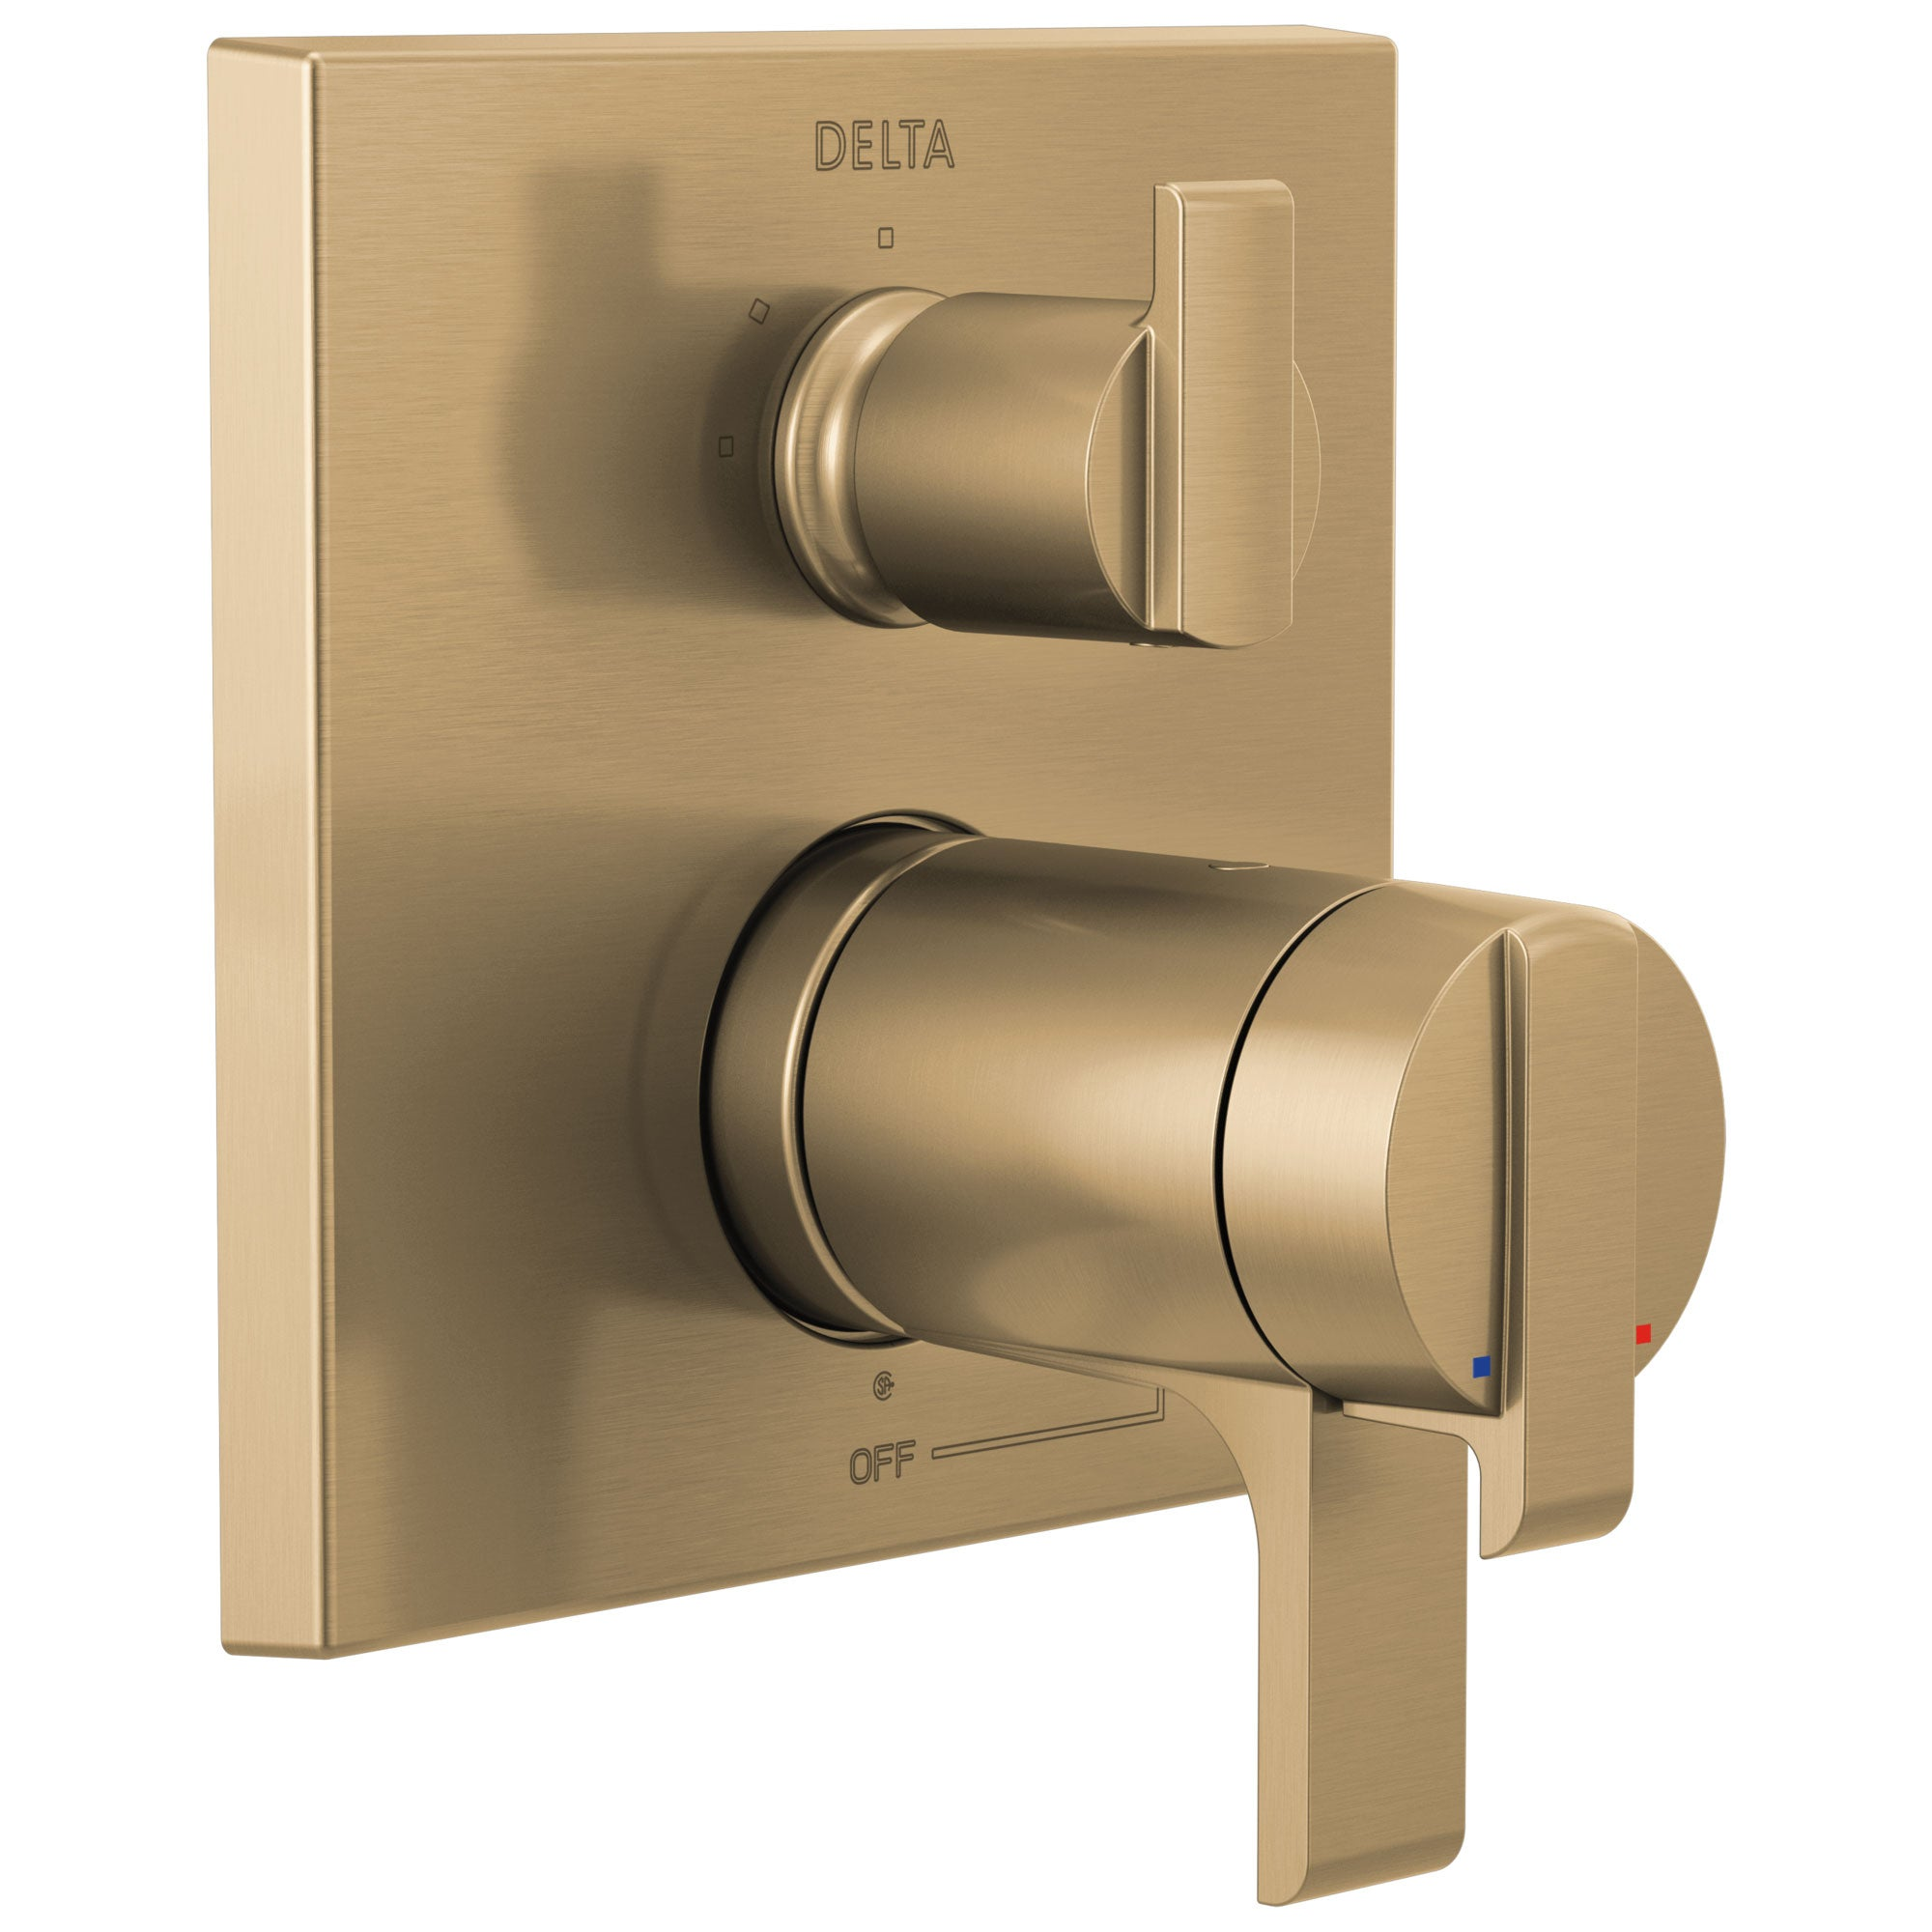 Delta Ara Modern Champagne Bronze Finish Thermostatic Shower System Control with 3-Setting Integrated Diverter Includes Valve and Handles D3692V